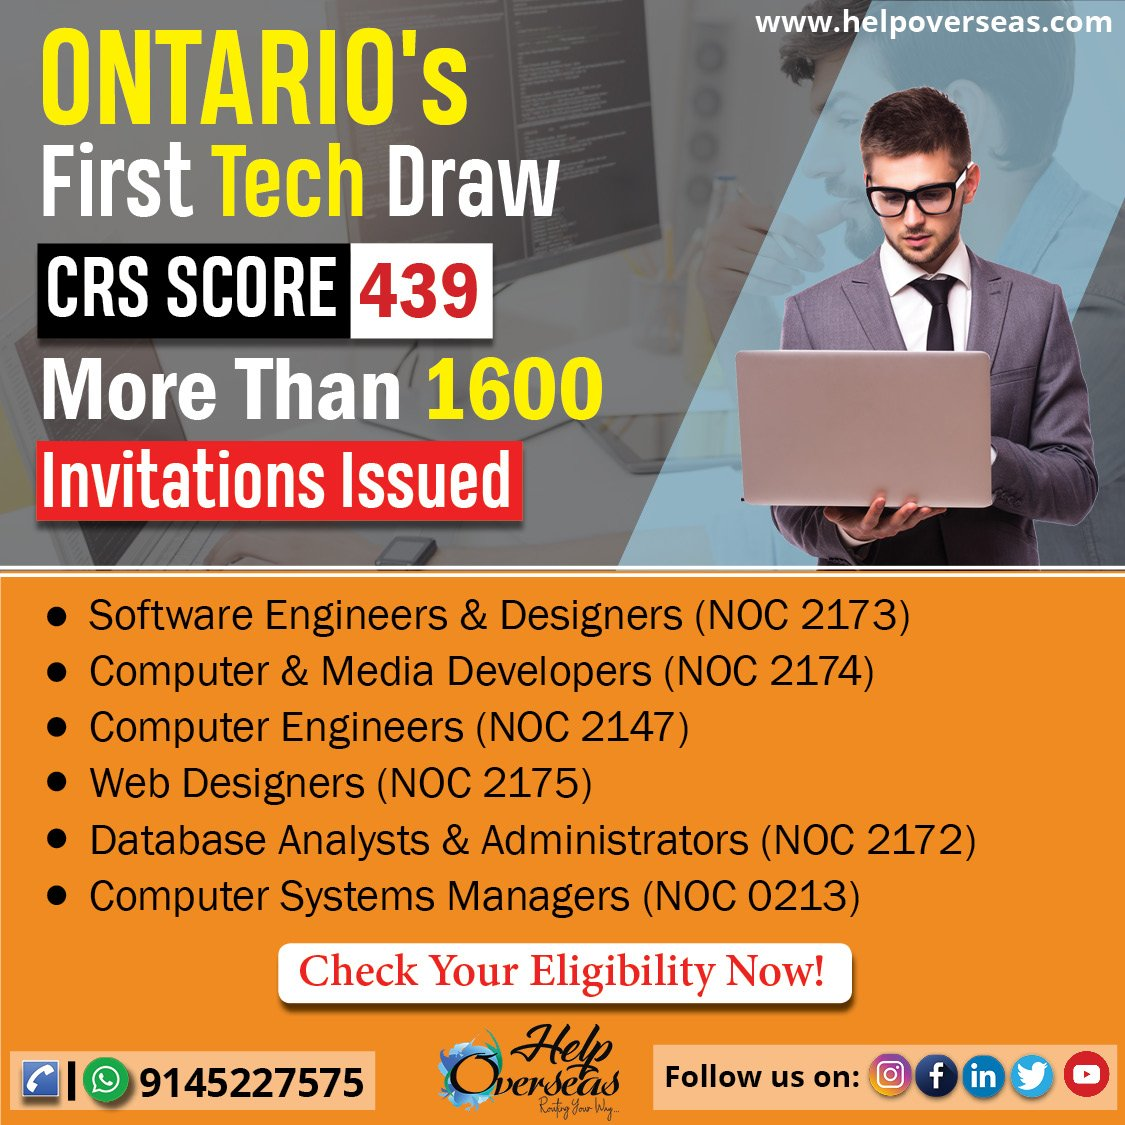 Helpoverseas On Twitter Ontario S Recent Draw At Crs Score 439 Invited More Than 1600 Candidates Check The 6 Occupations In Demand To Settle In Canada Canada Ontario Skilledworkers Techprofessions Itjobsincanada Cicnews Helpoverseas